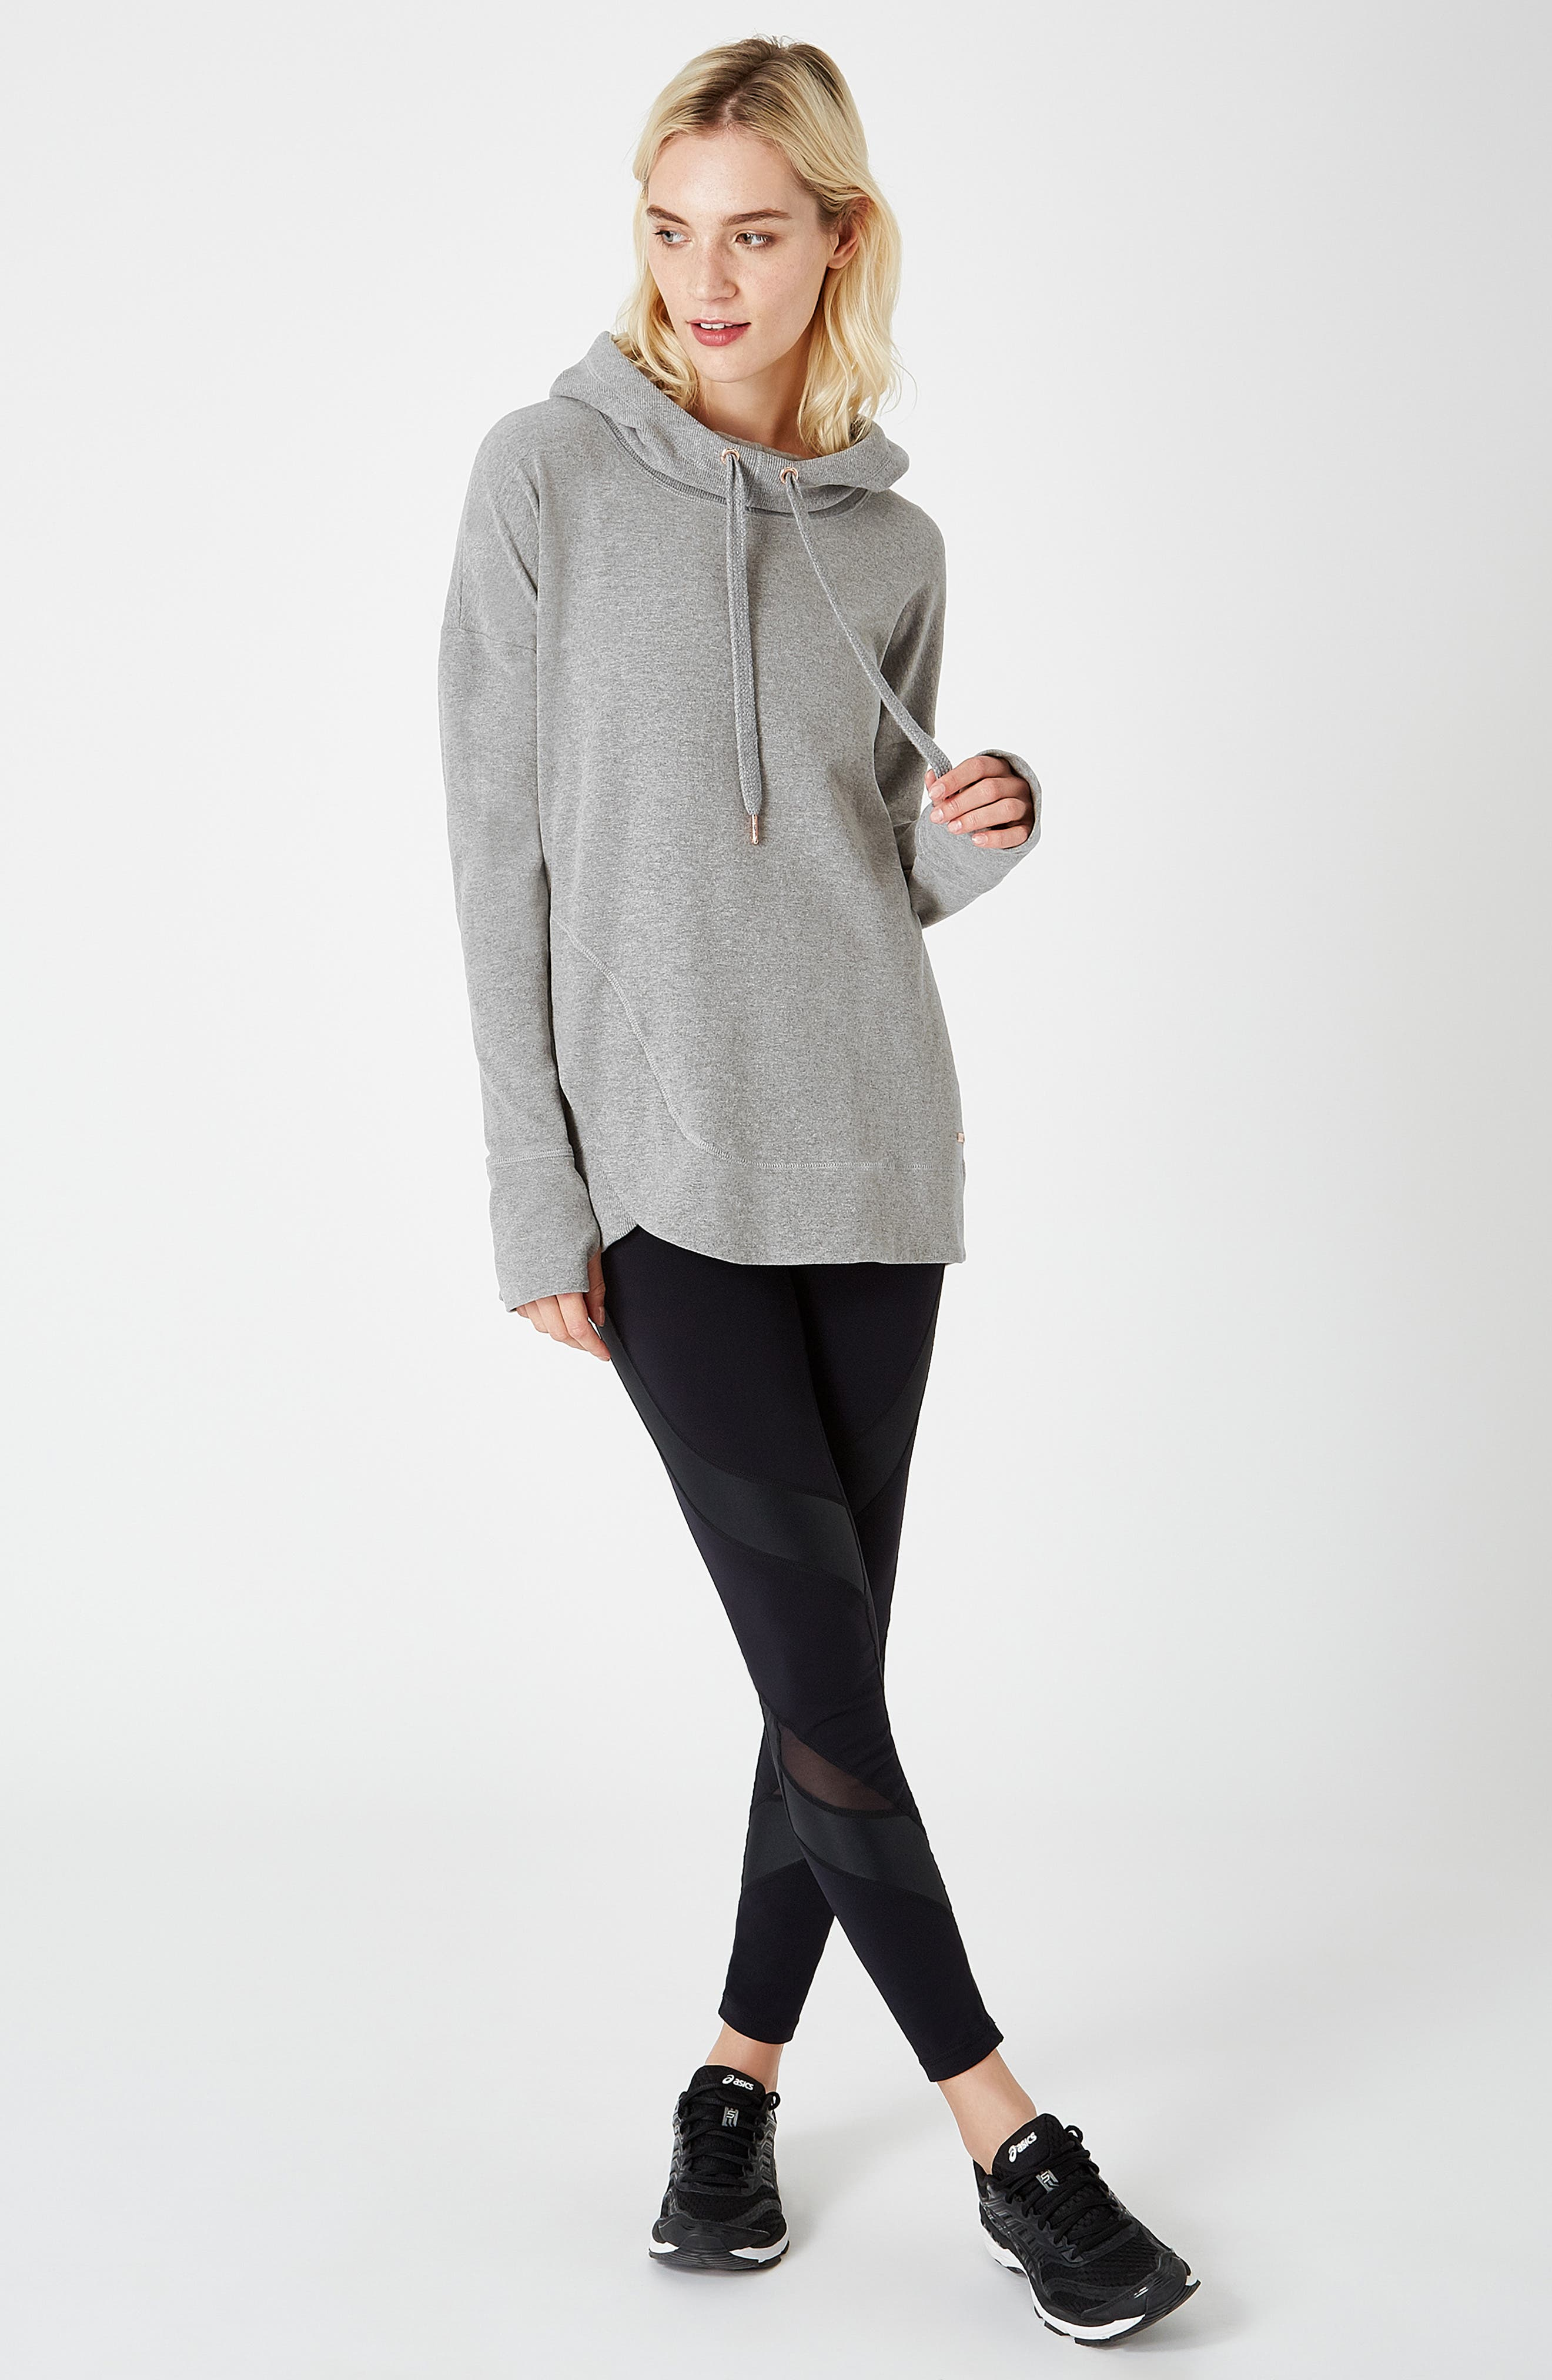 Invigorate Luxe Hoodie,                             Alternate thumbnail 7, color,                             LIGHT GREY MARL